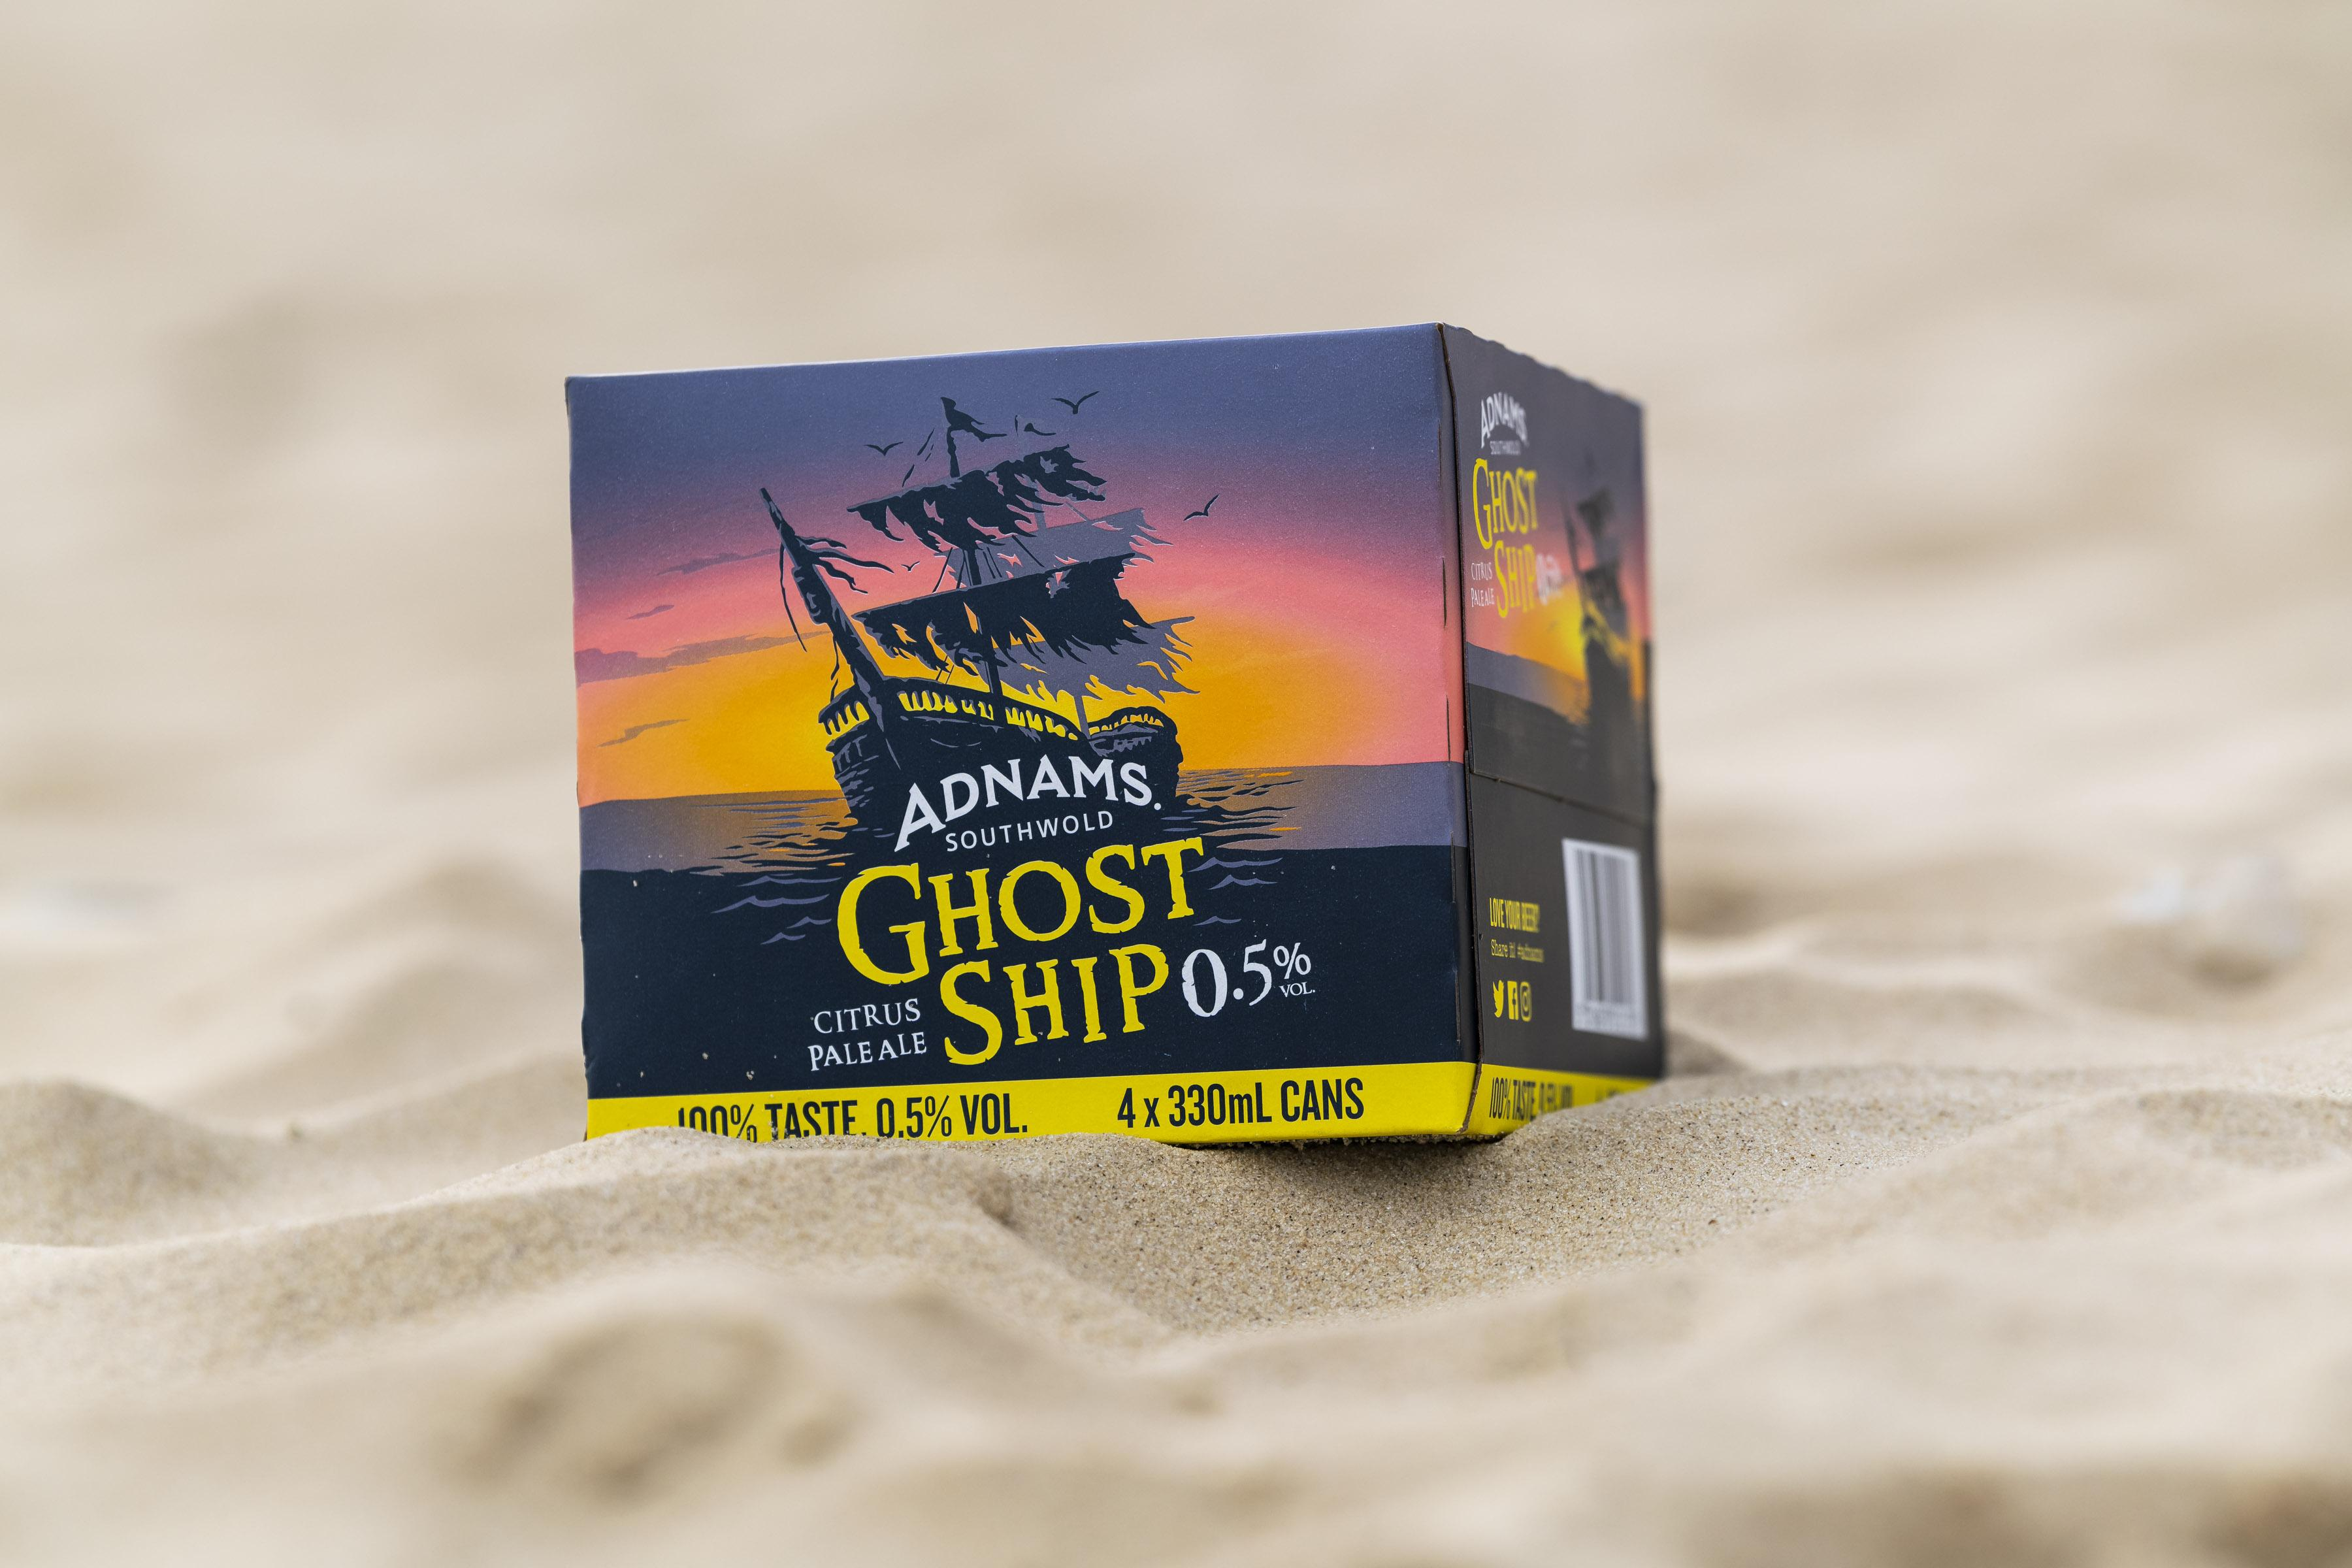 Adnams Ghost Ship 0.5% Low Alcohol Packaging | Saxon Packaging - 01502 513112